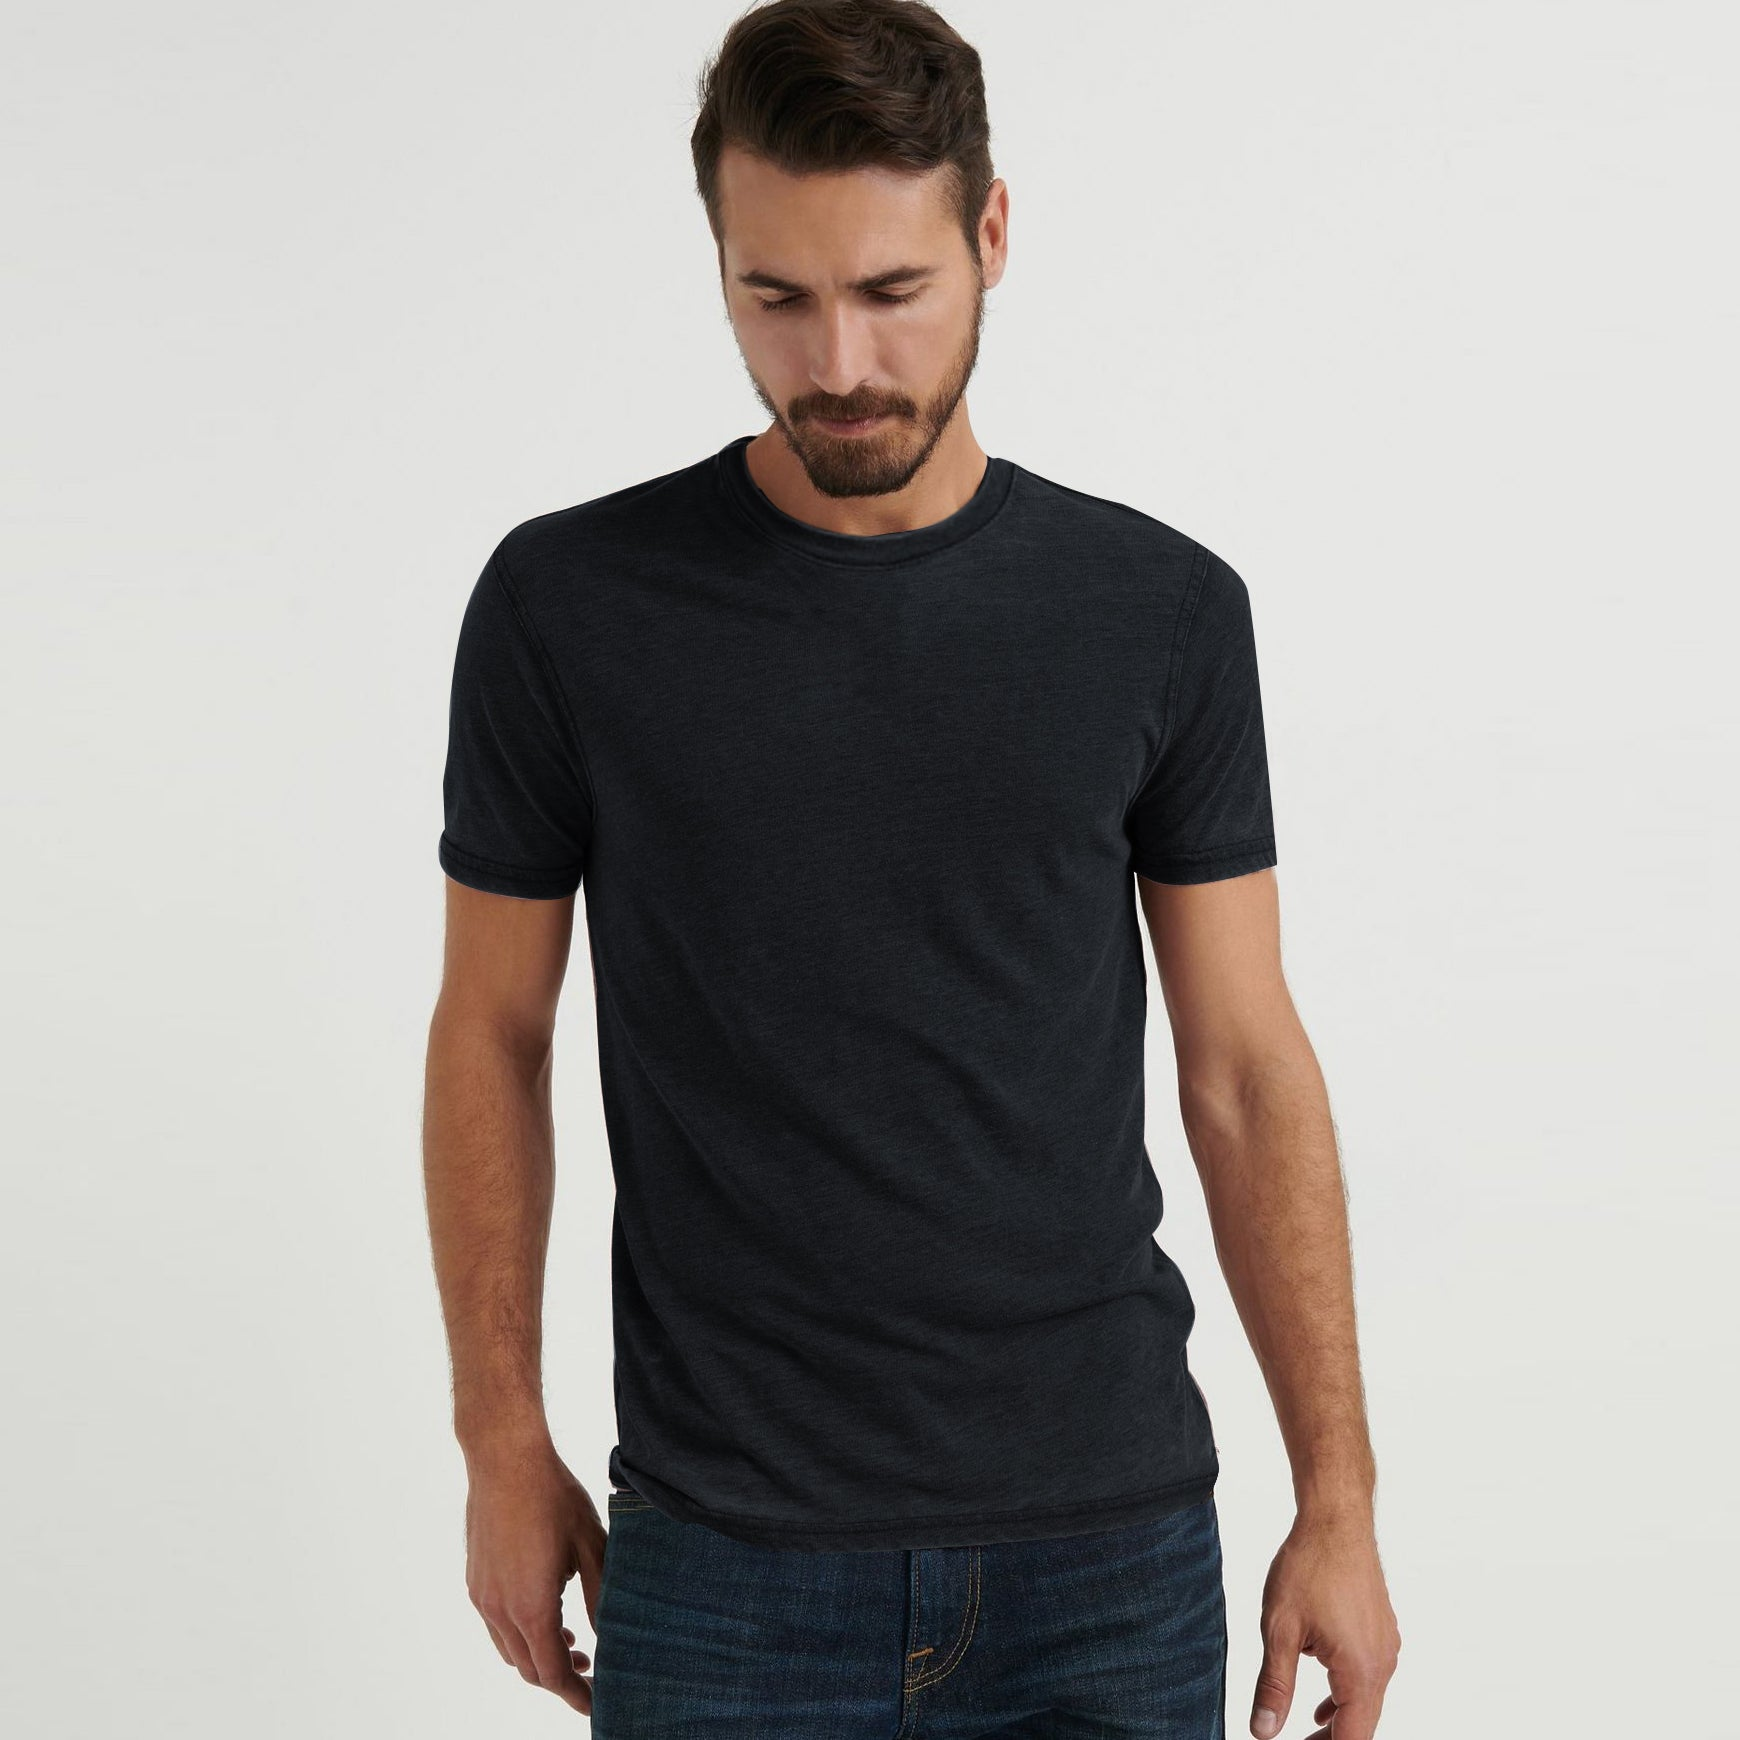 F&F Crew Neck Burnout Wash Single Jersey Tee Shirt For Men-Charcoal Faded-BE8569